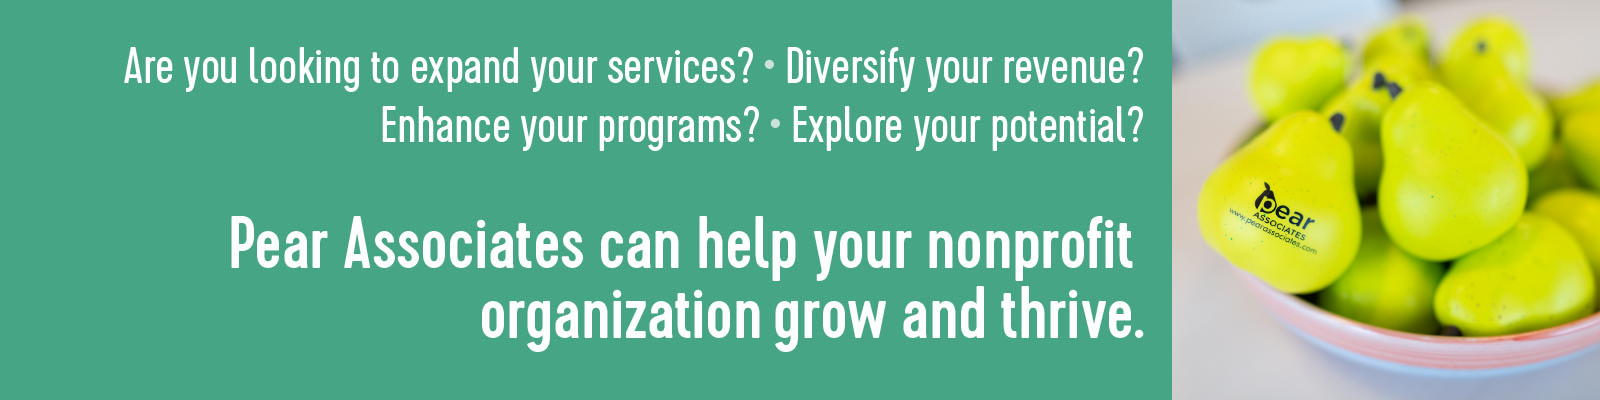 Pear Associates can help your nonprofit organization grow and thrive